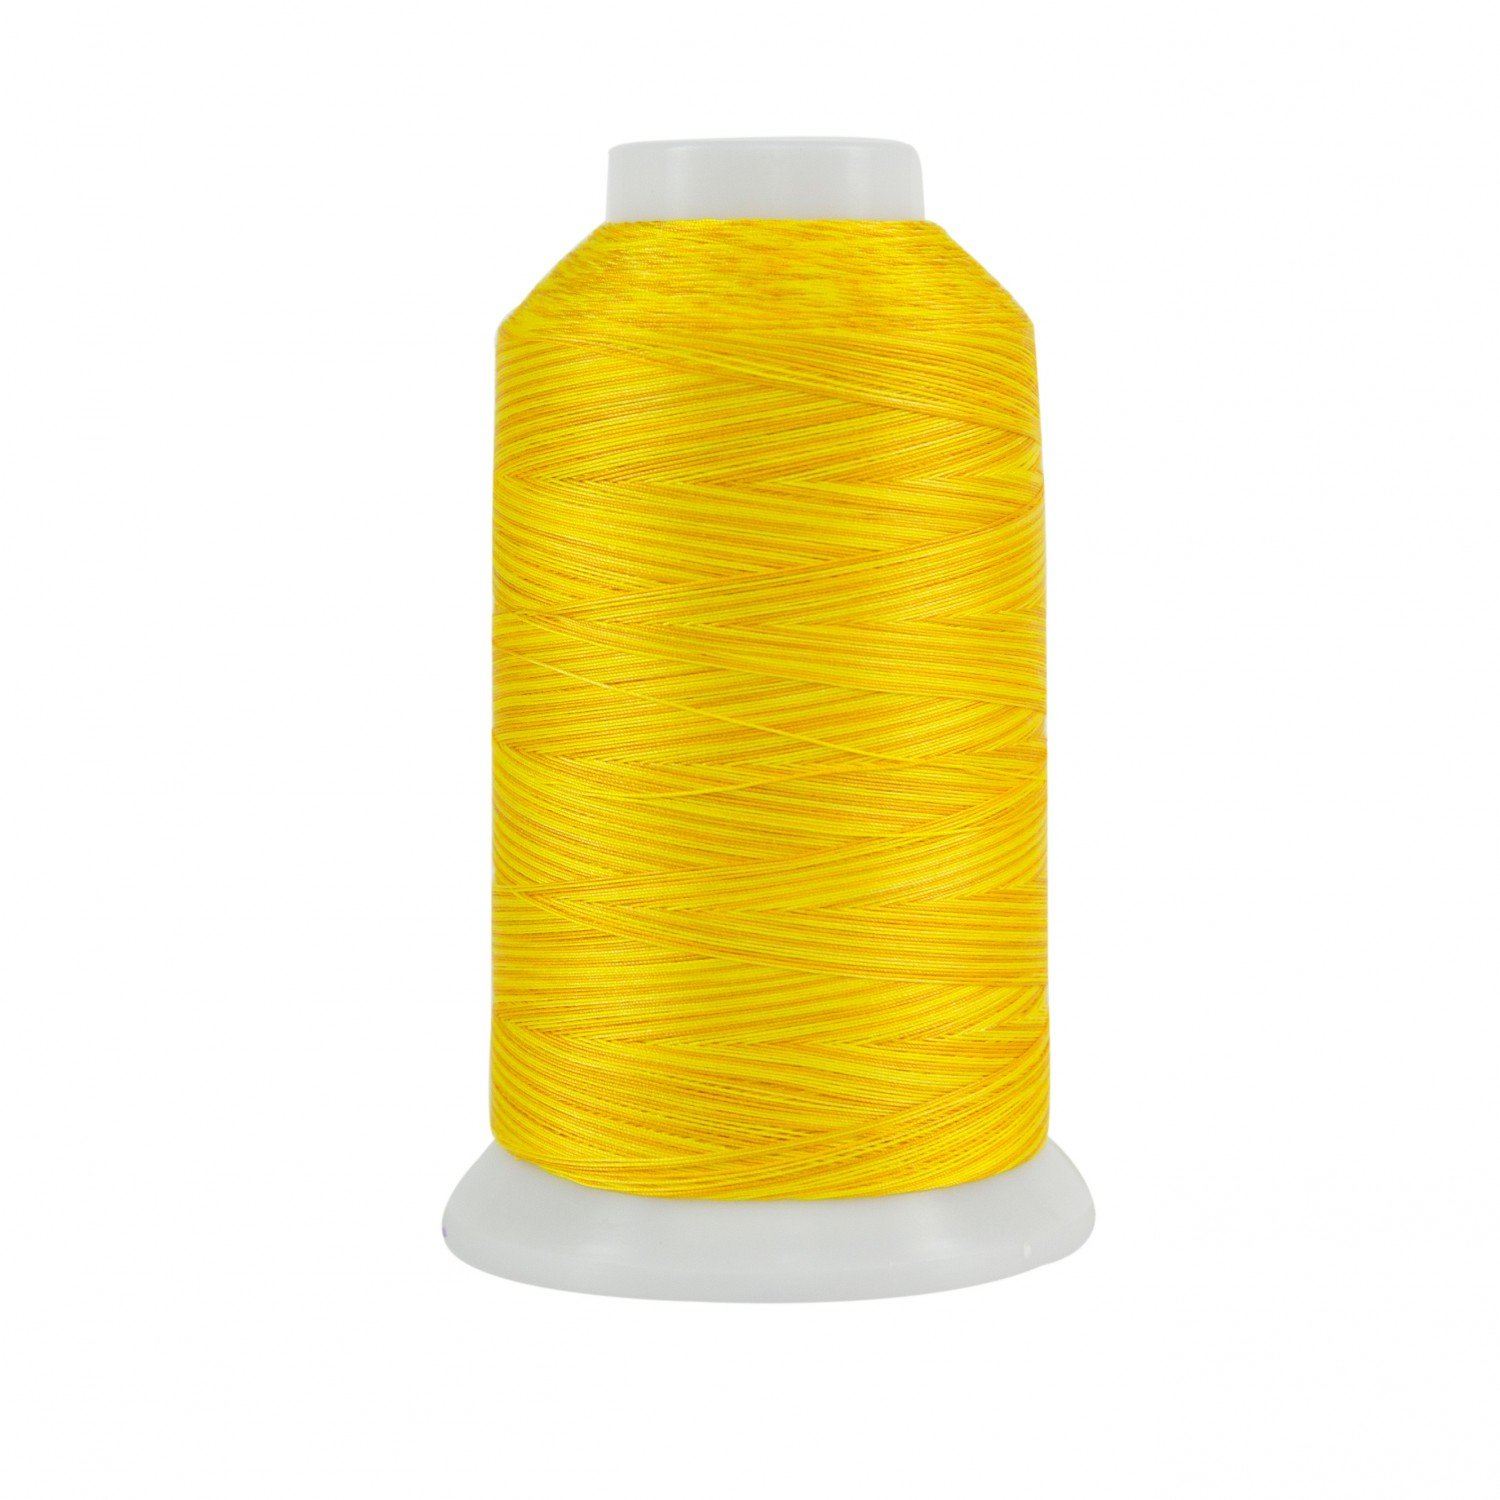 King Tut Cotton Quilting Thread 985 Shekels 3-ply 40wt 2000yds Cone